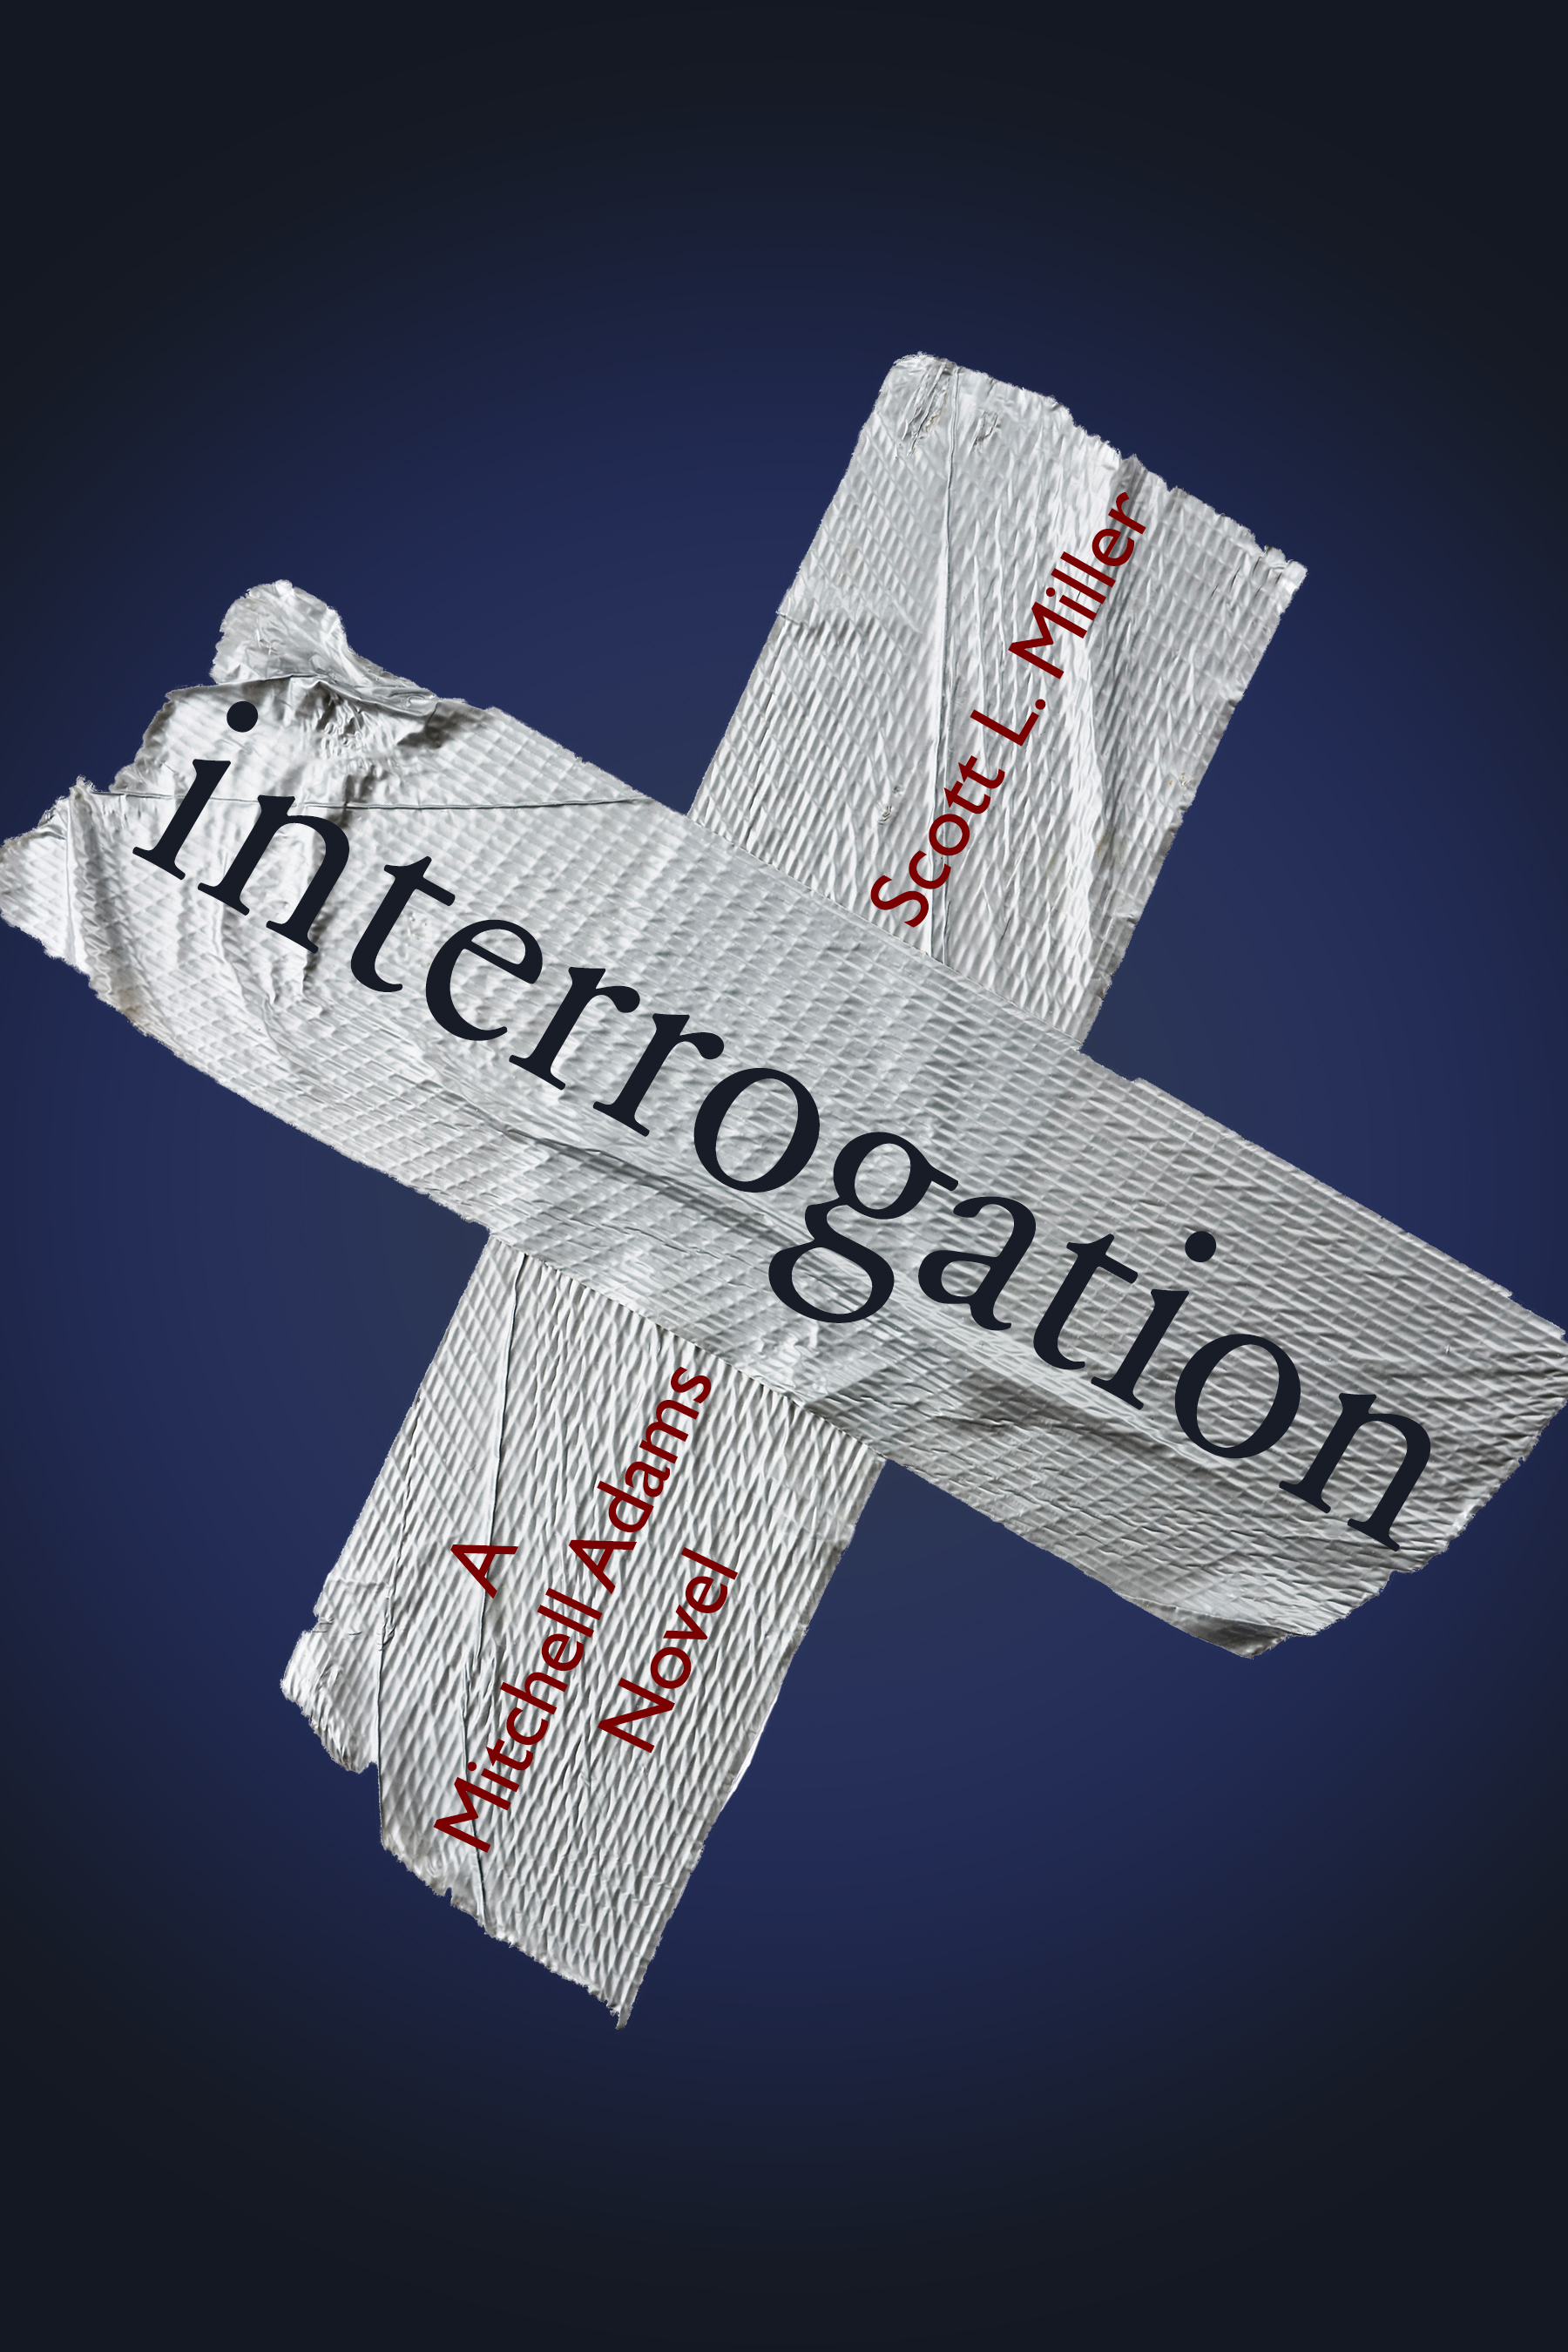 Interrogation- cover mock-up